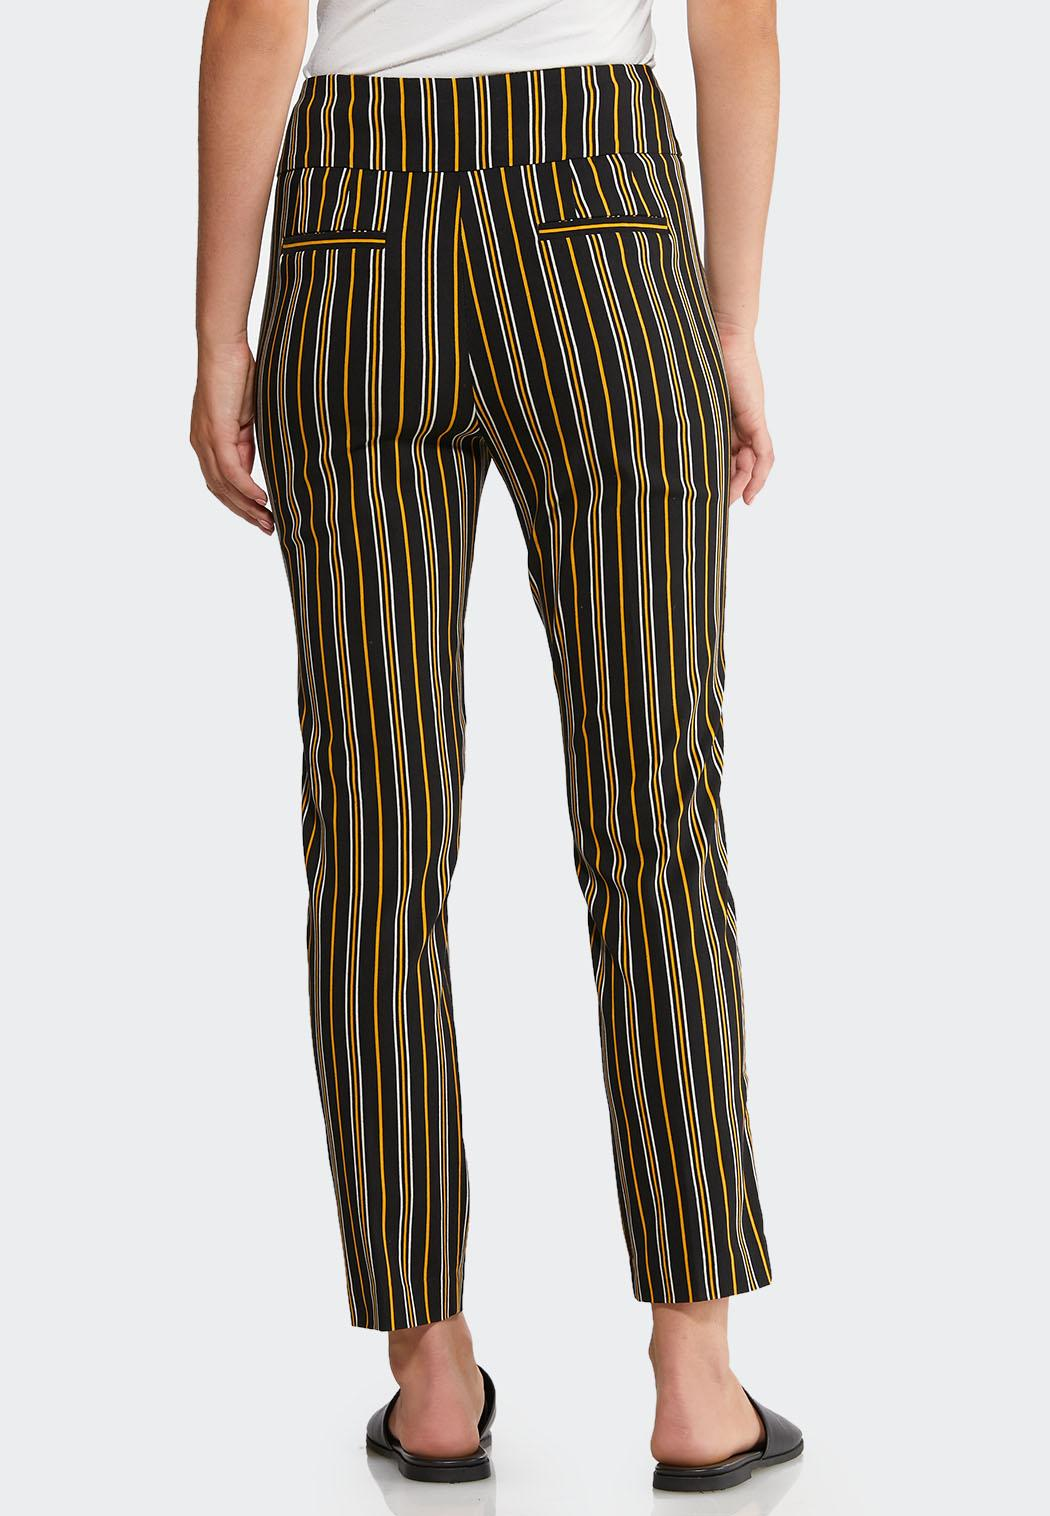 Gold Stripe Pants (Item #43910668)